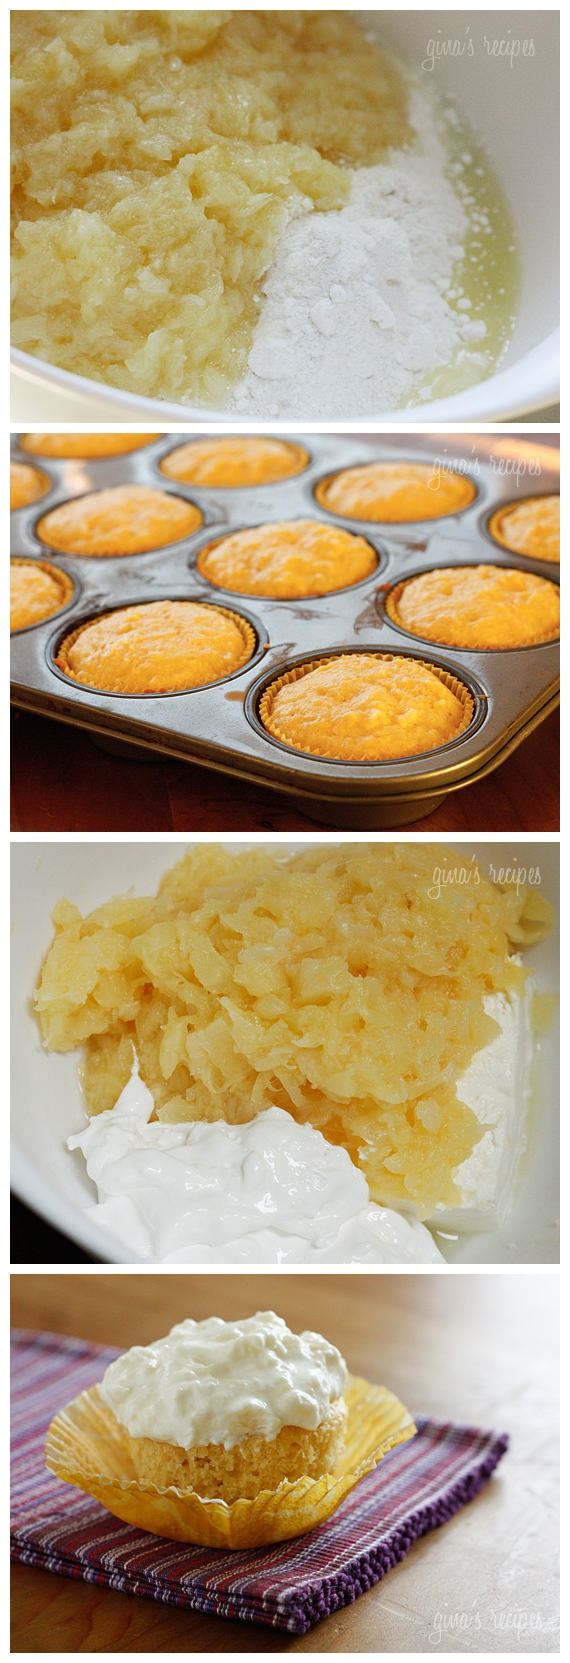 Pineapple Bliss Cupcakes | sweets | Pinterest